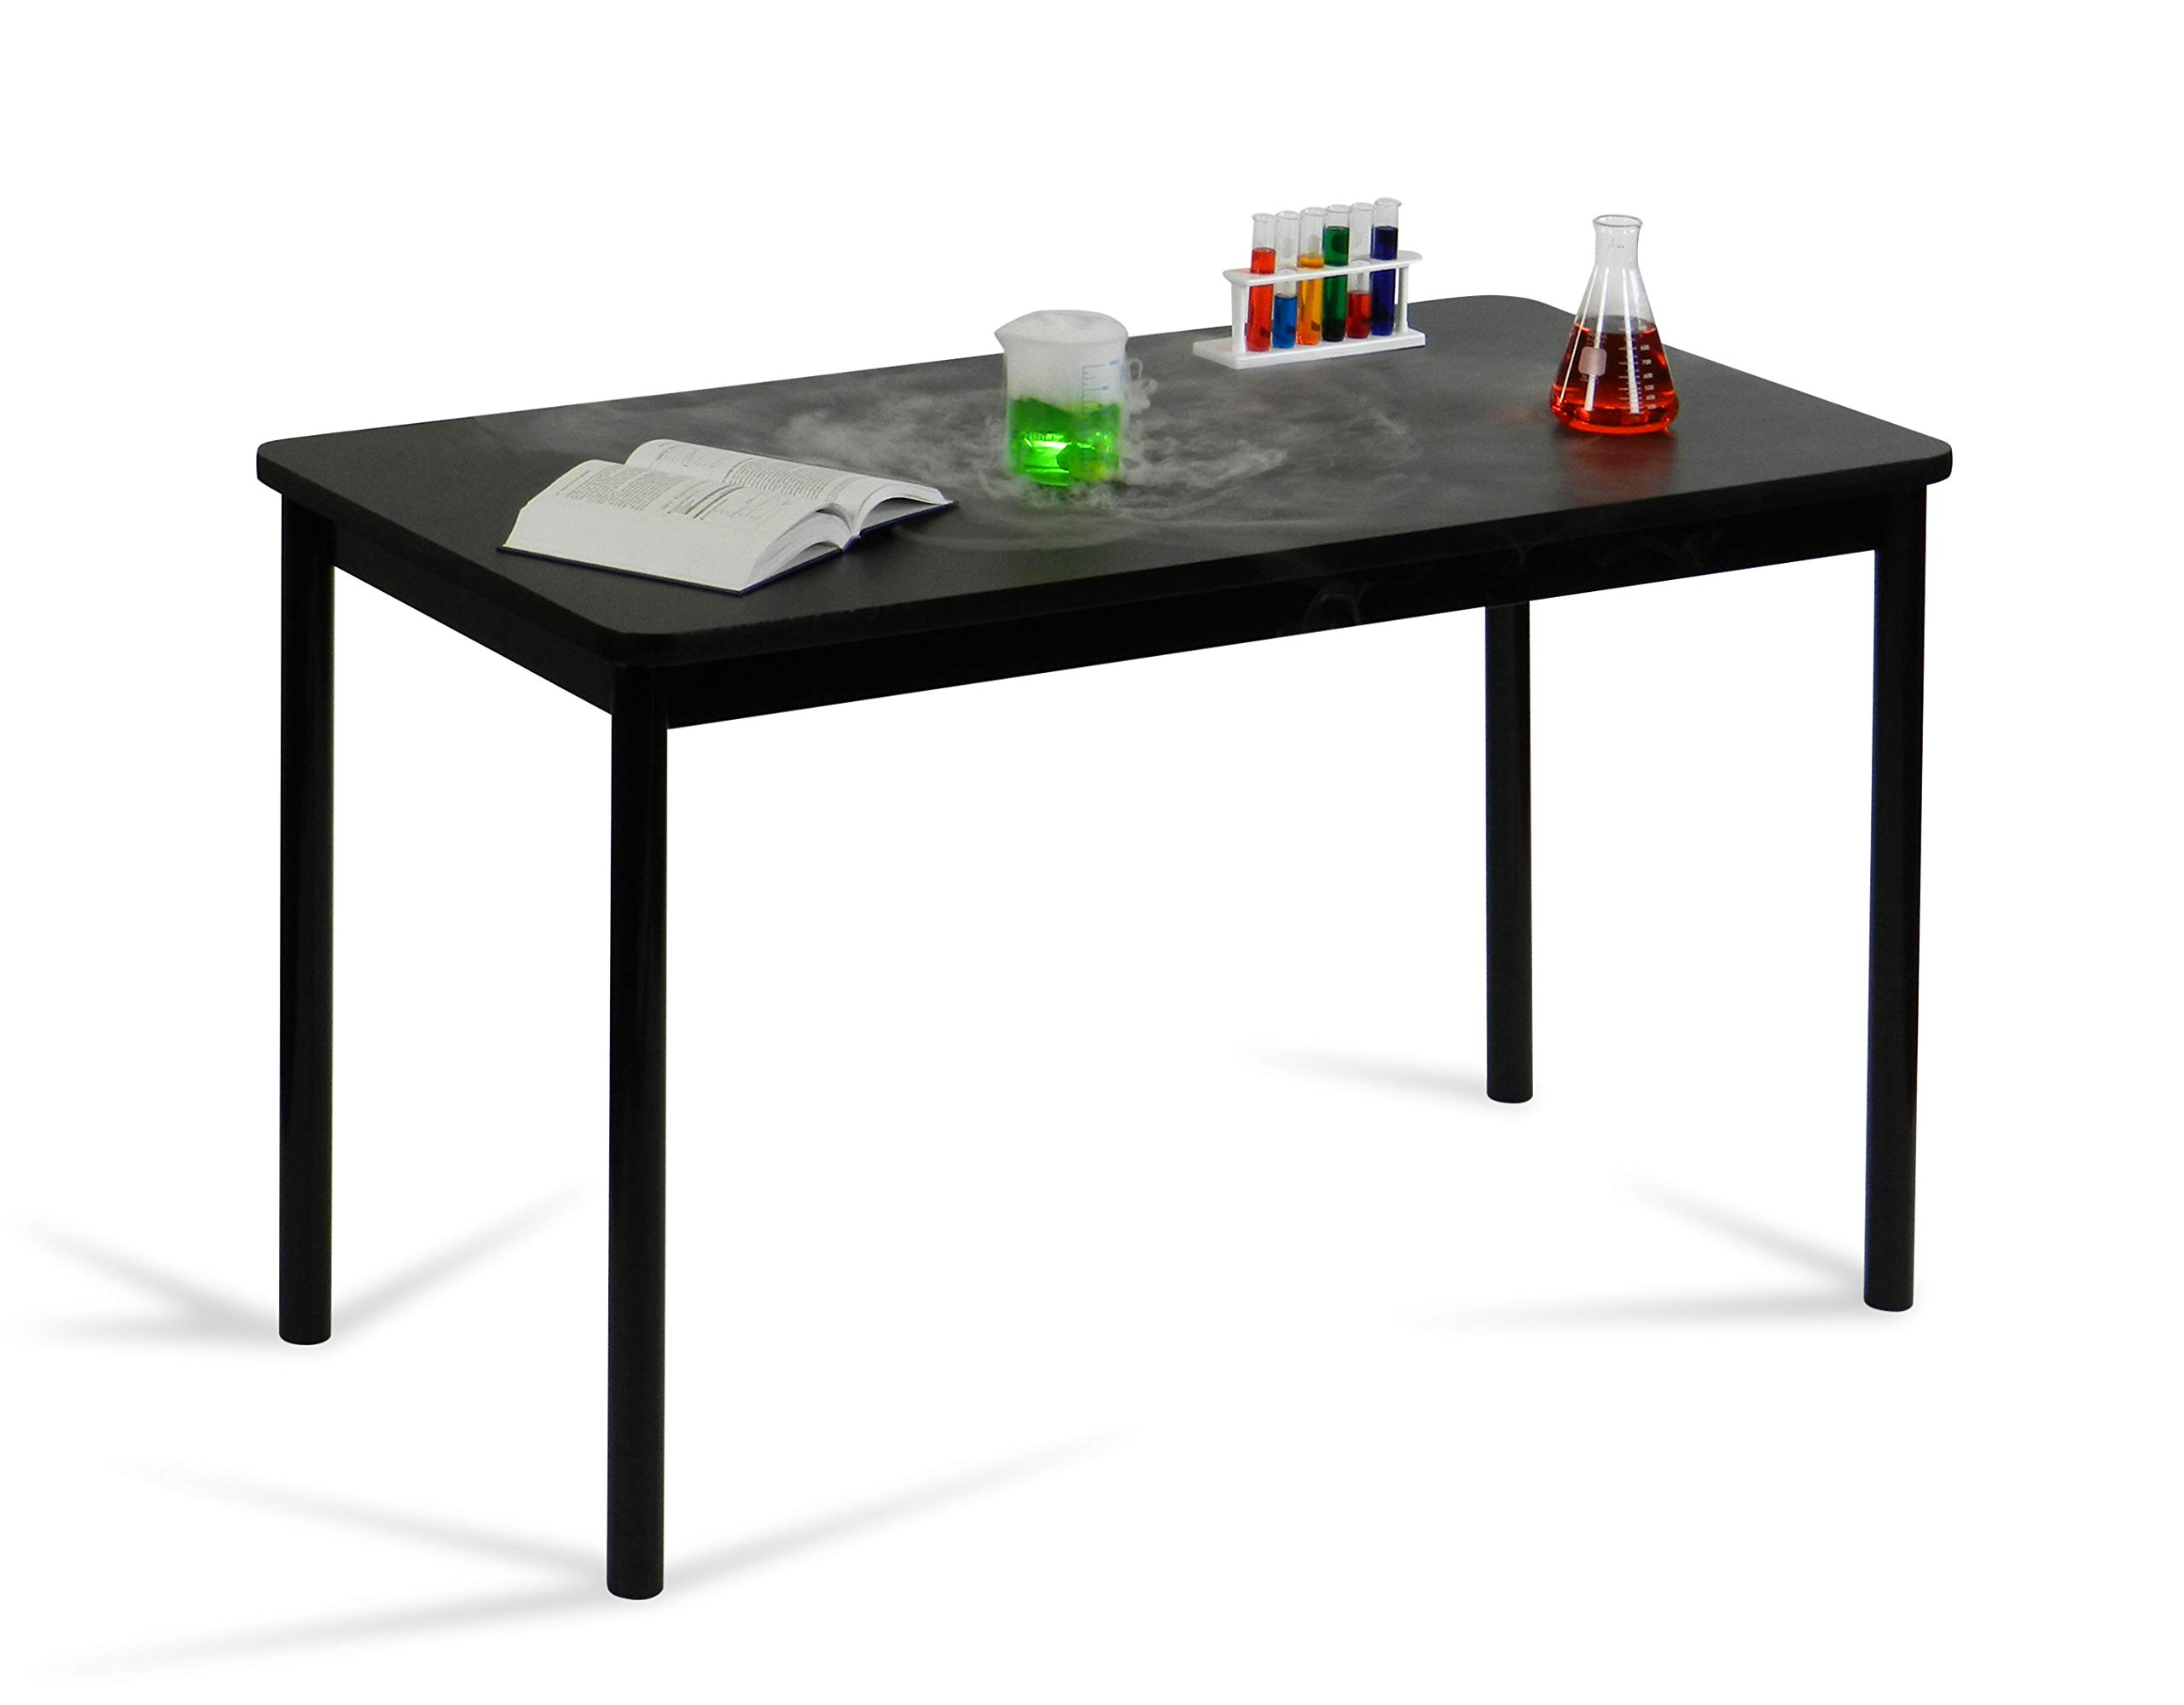 Correll 36'' High Standing / Stool Height Utility Table, 30'' x 48'' Black Granite High-Pressure Laminate Top with Black Frame , Rock Solid Commercial Quality (LT3048-07) by Correll